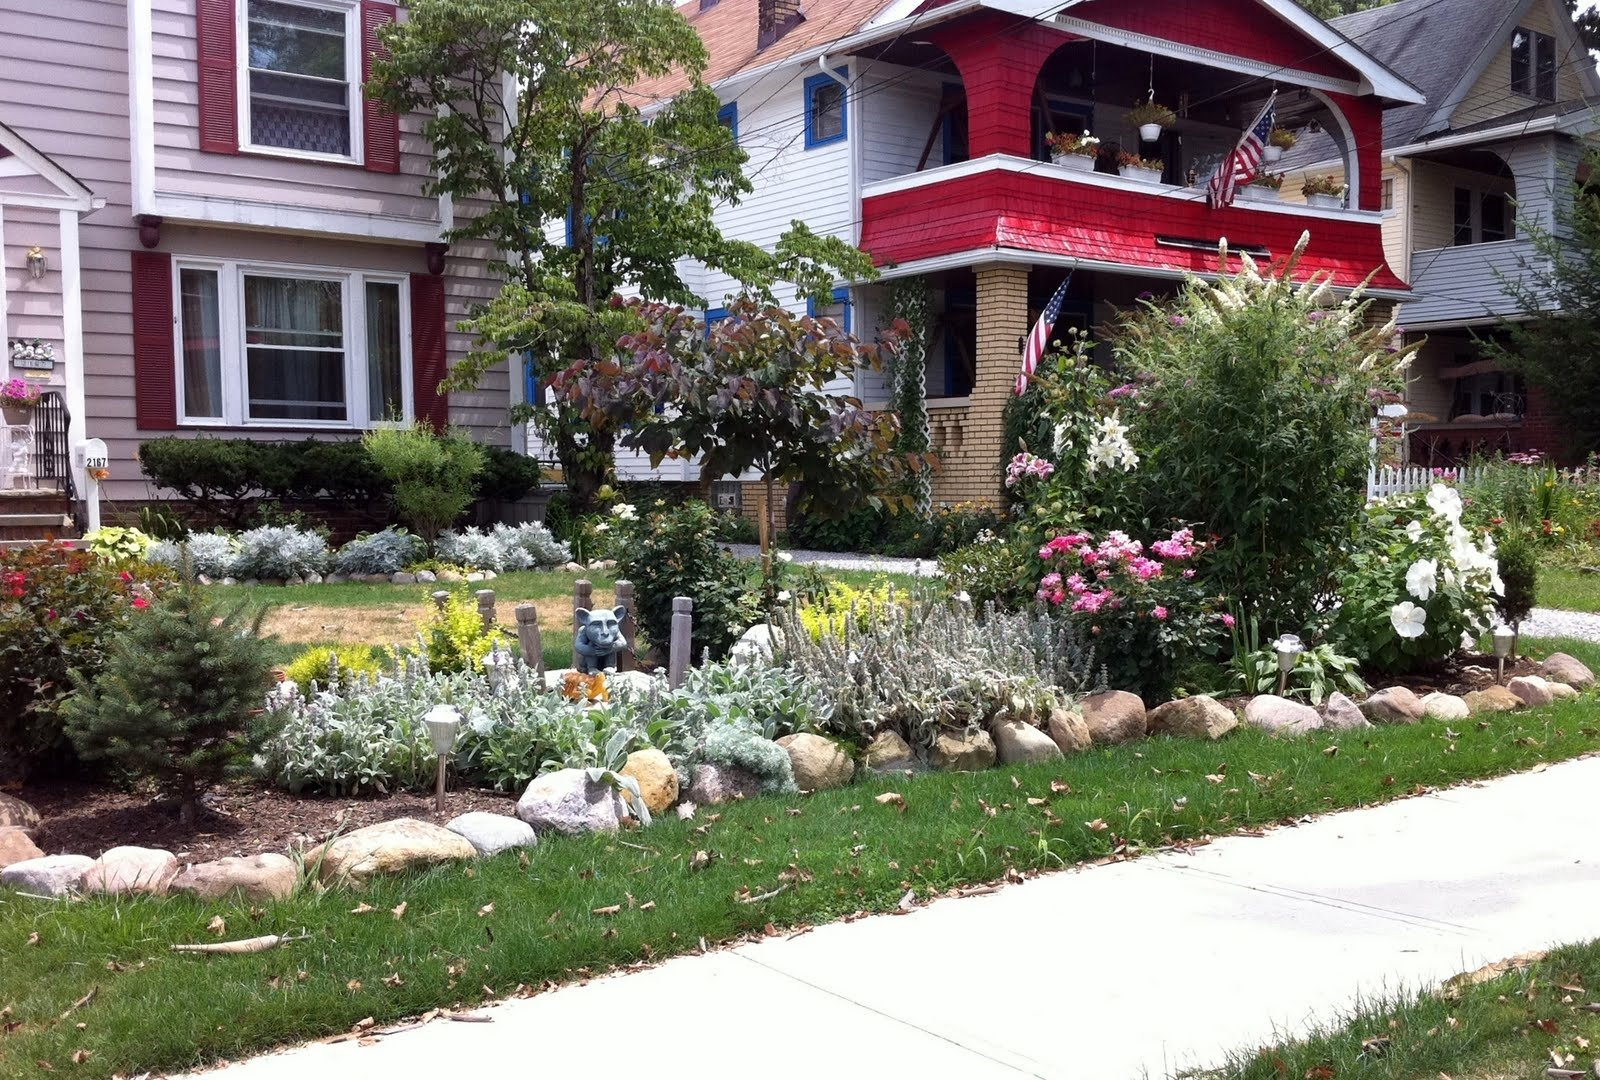 10 Stylish Small Front Yard Flower Bed Ideas best front yard landscape ideas the garden inspirations 2020